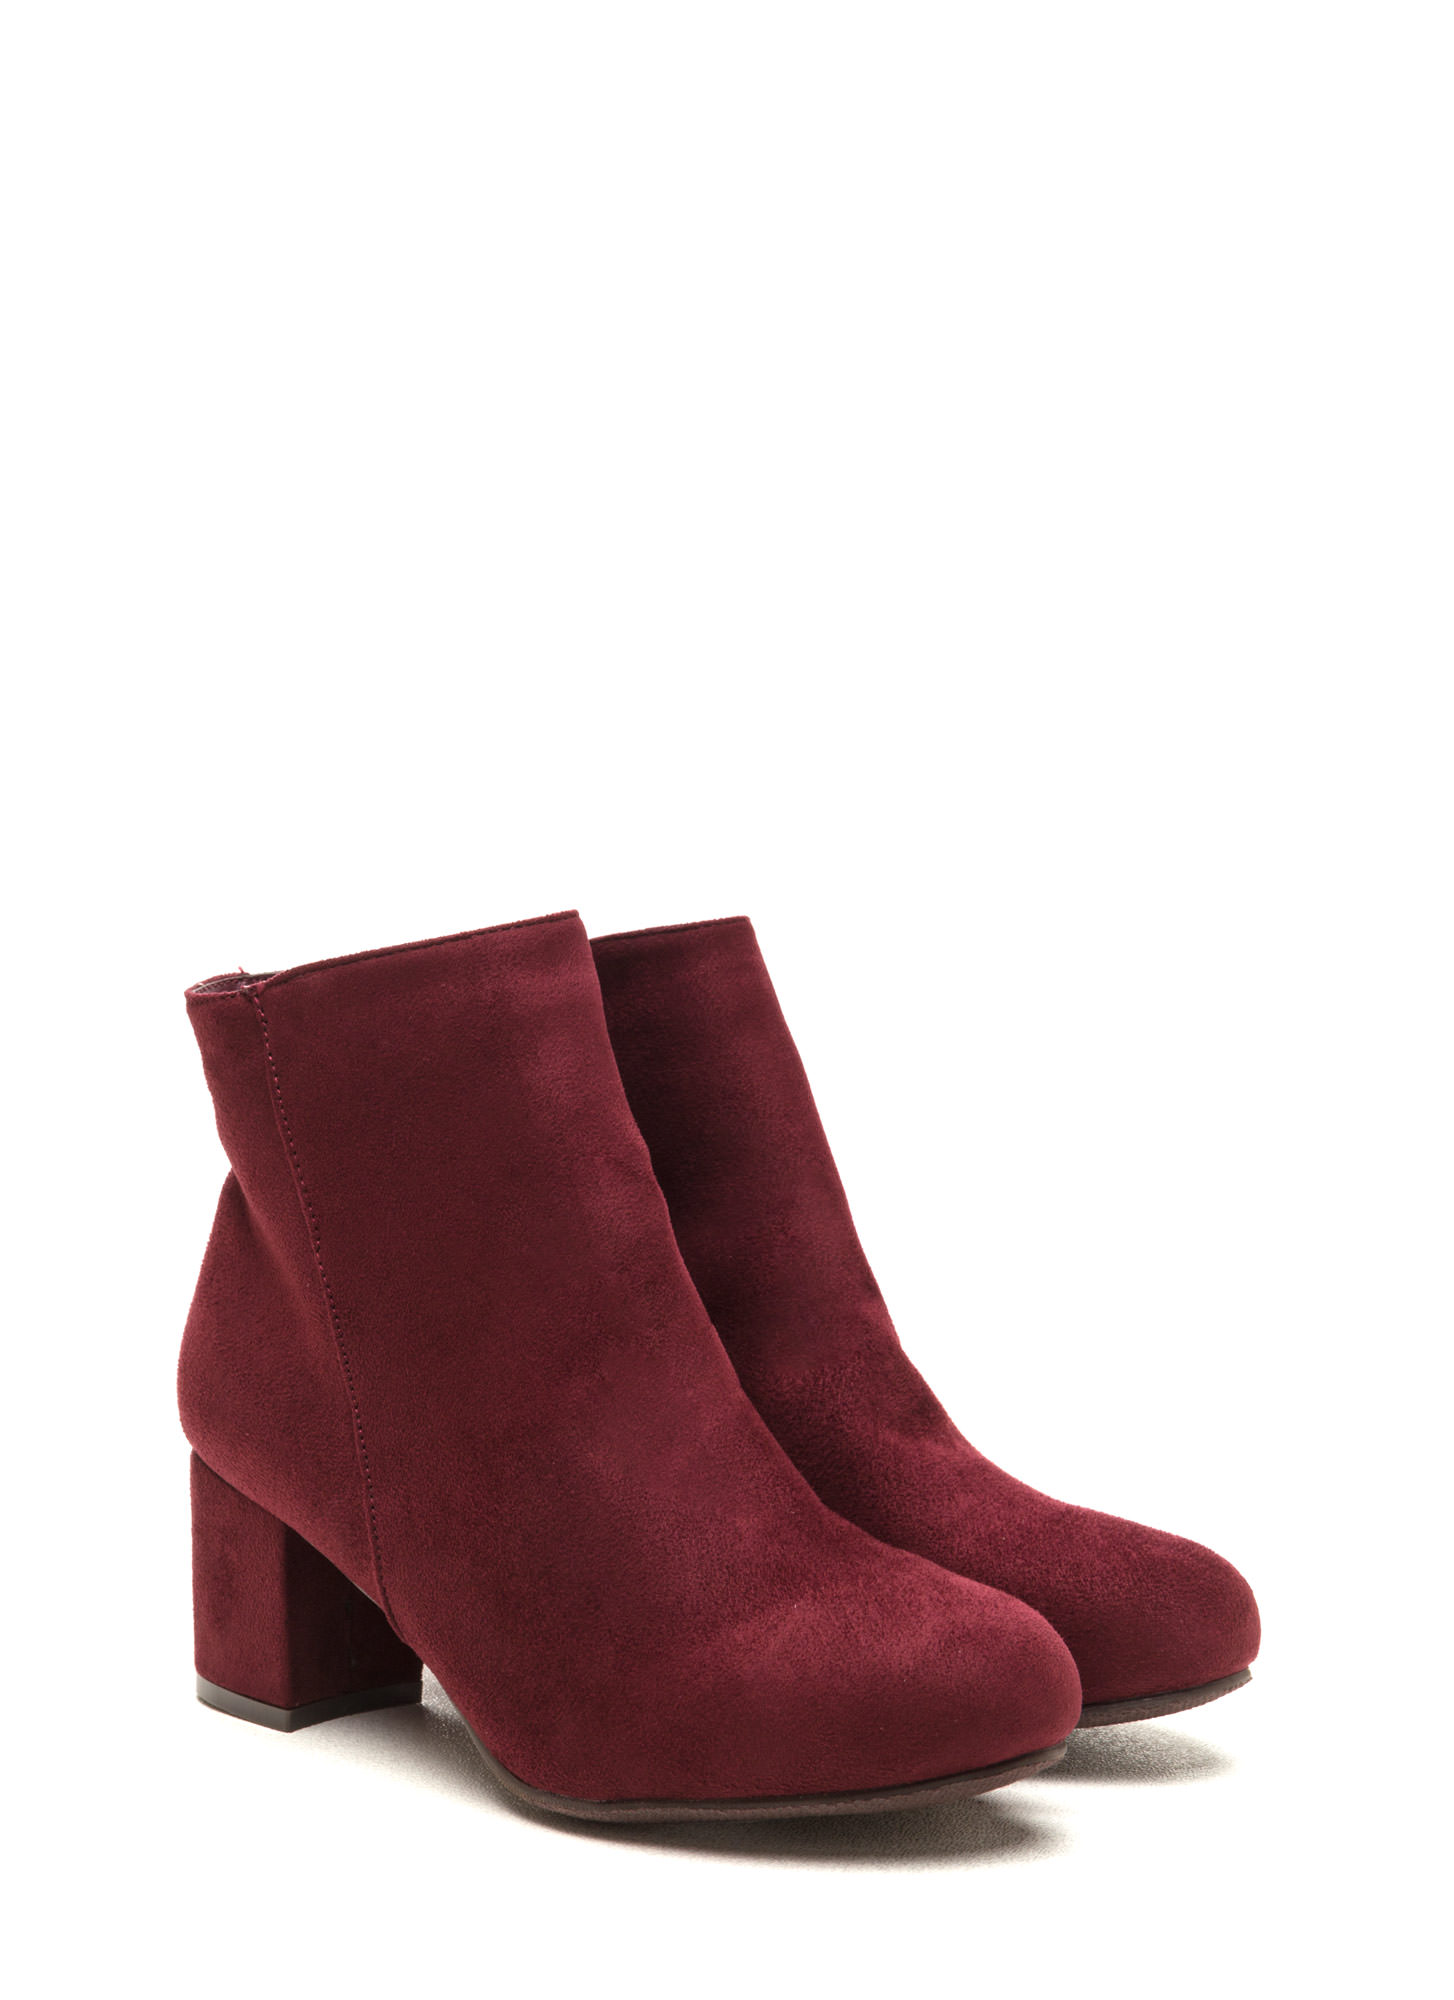 You're Blocked Chunky Faux Suede Booties BURGUNDY